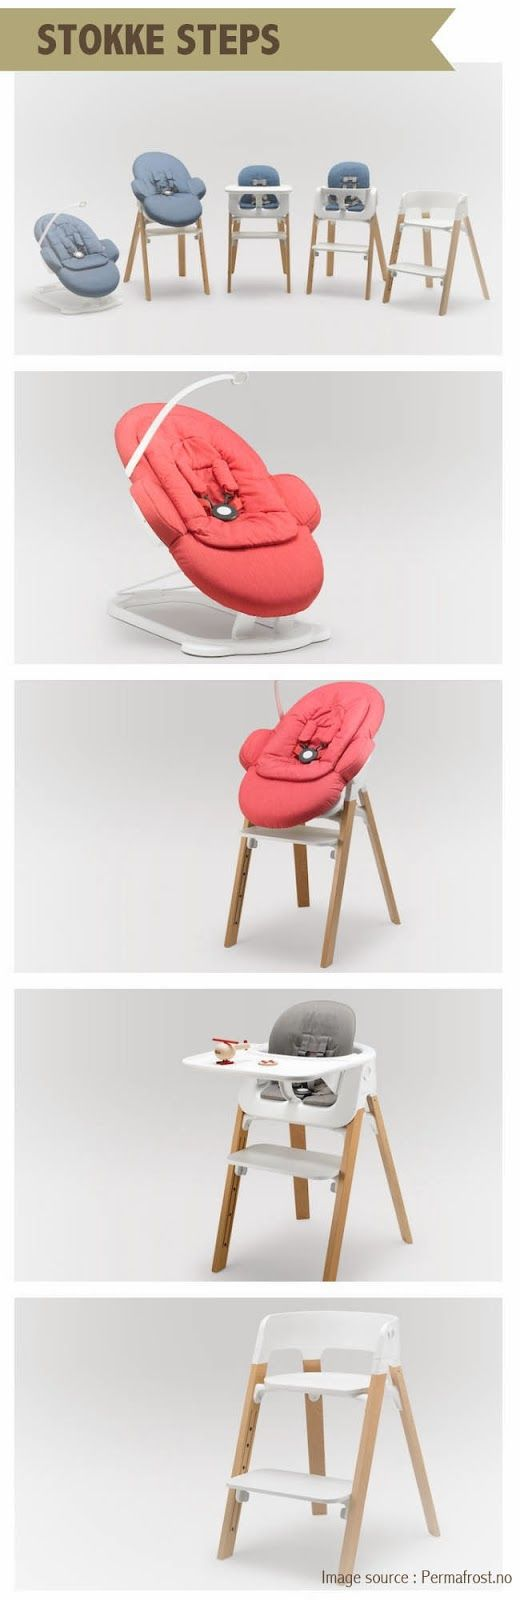 Stokke Steps Chair – The chair that grows with your baby from newborn to ten years of age